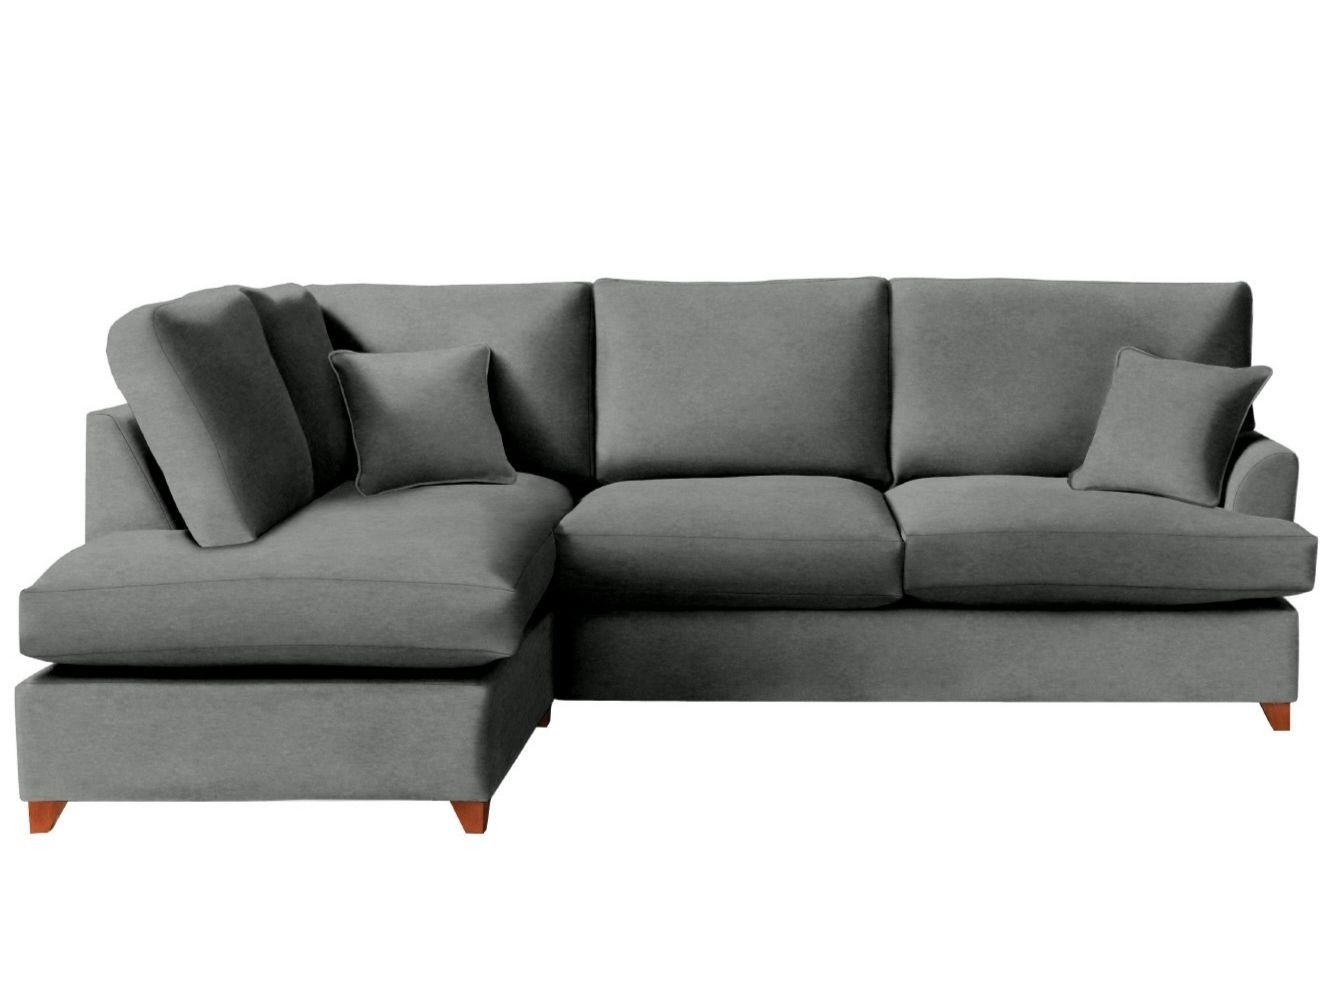 This is how I look in Stain Resistant Vintage Velvet Asphalt with feather-wrapped foam seat cushions